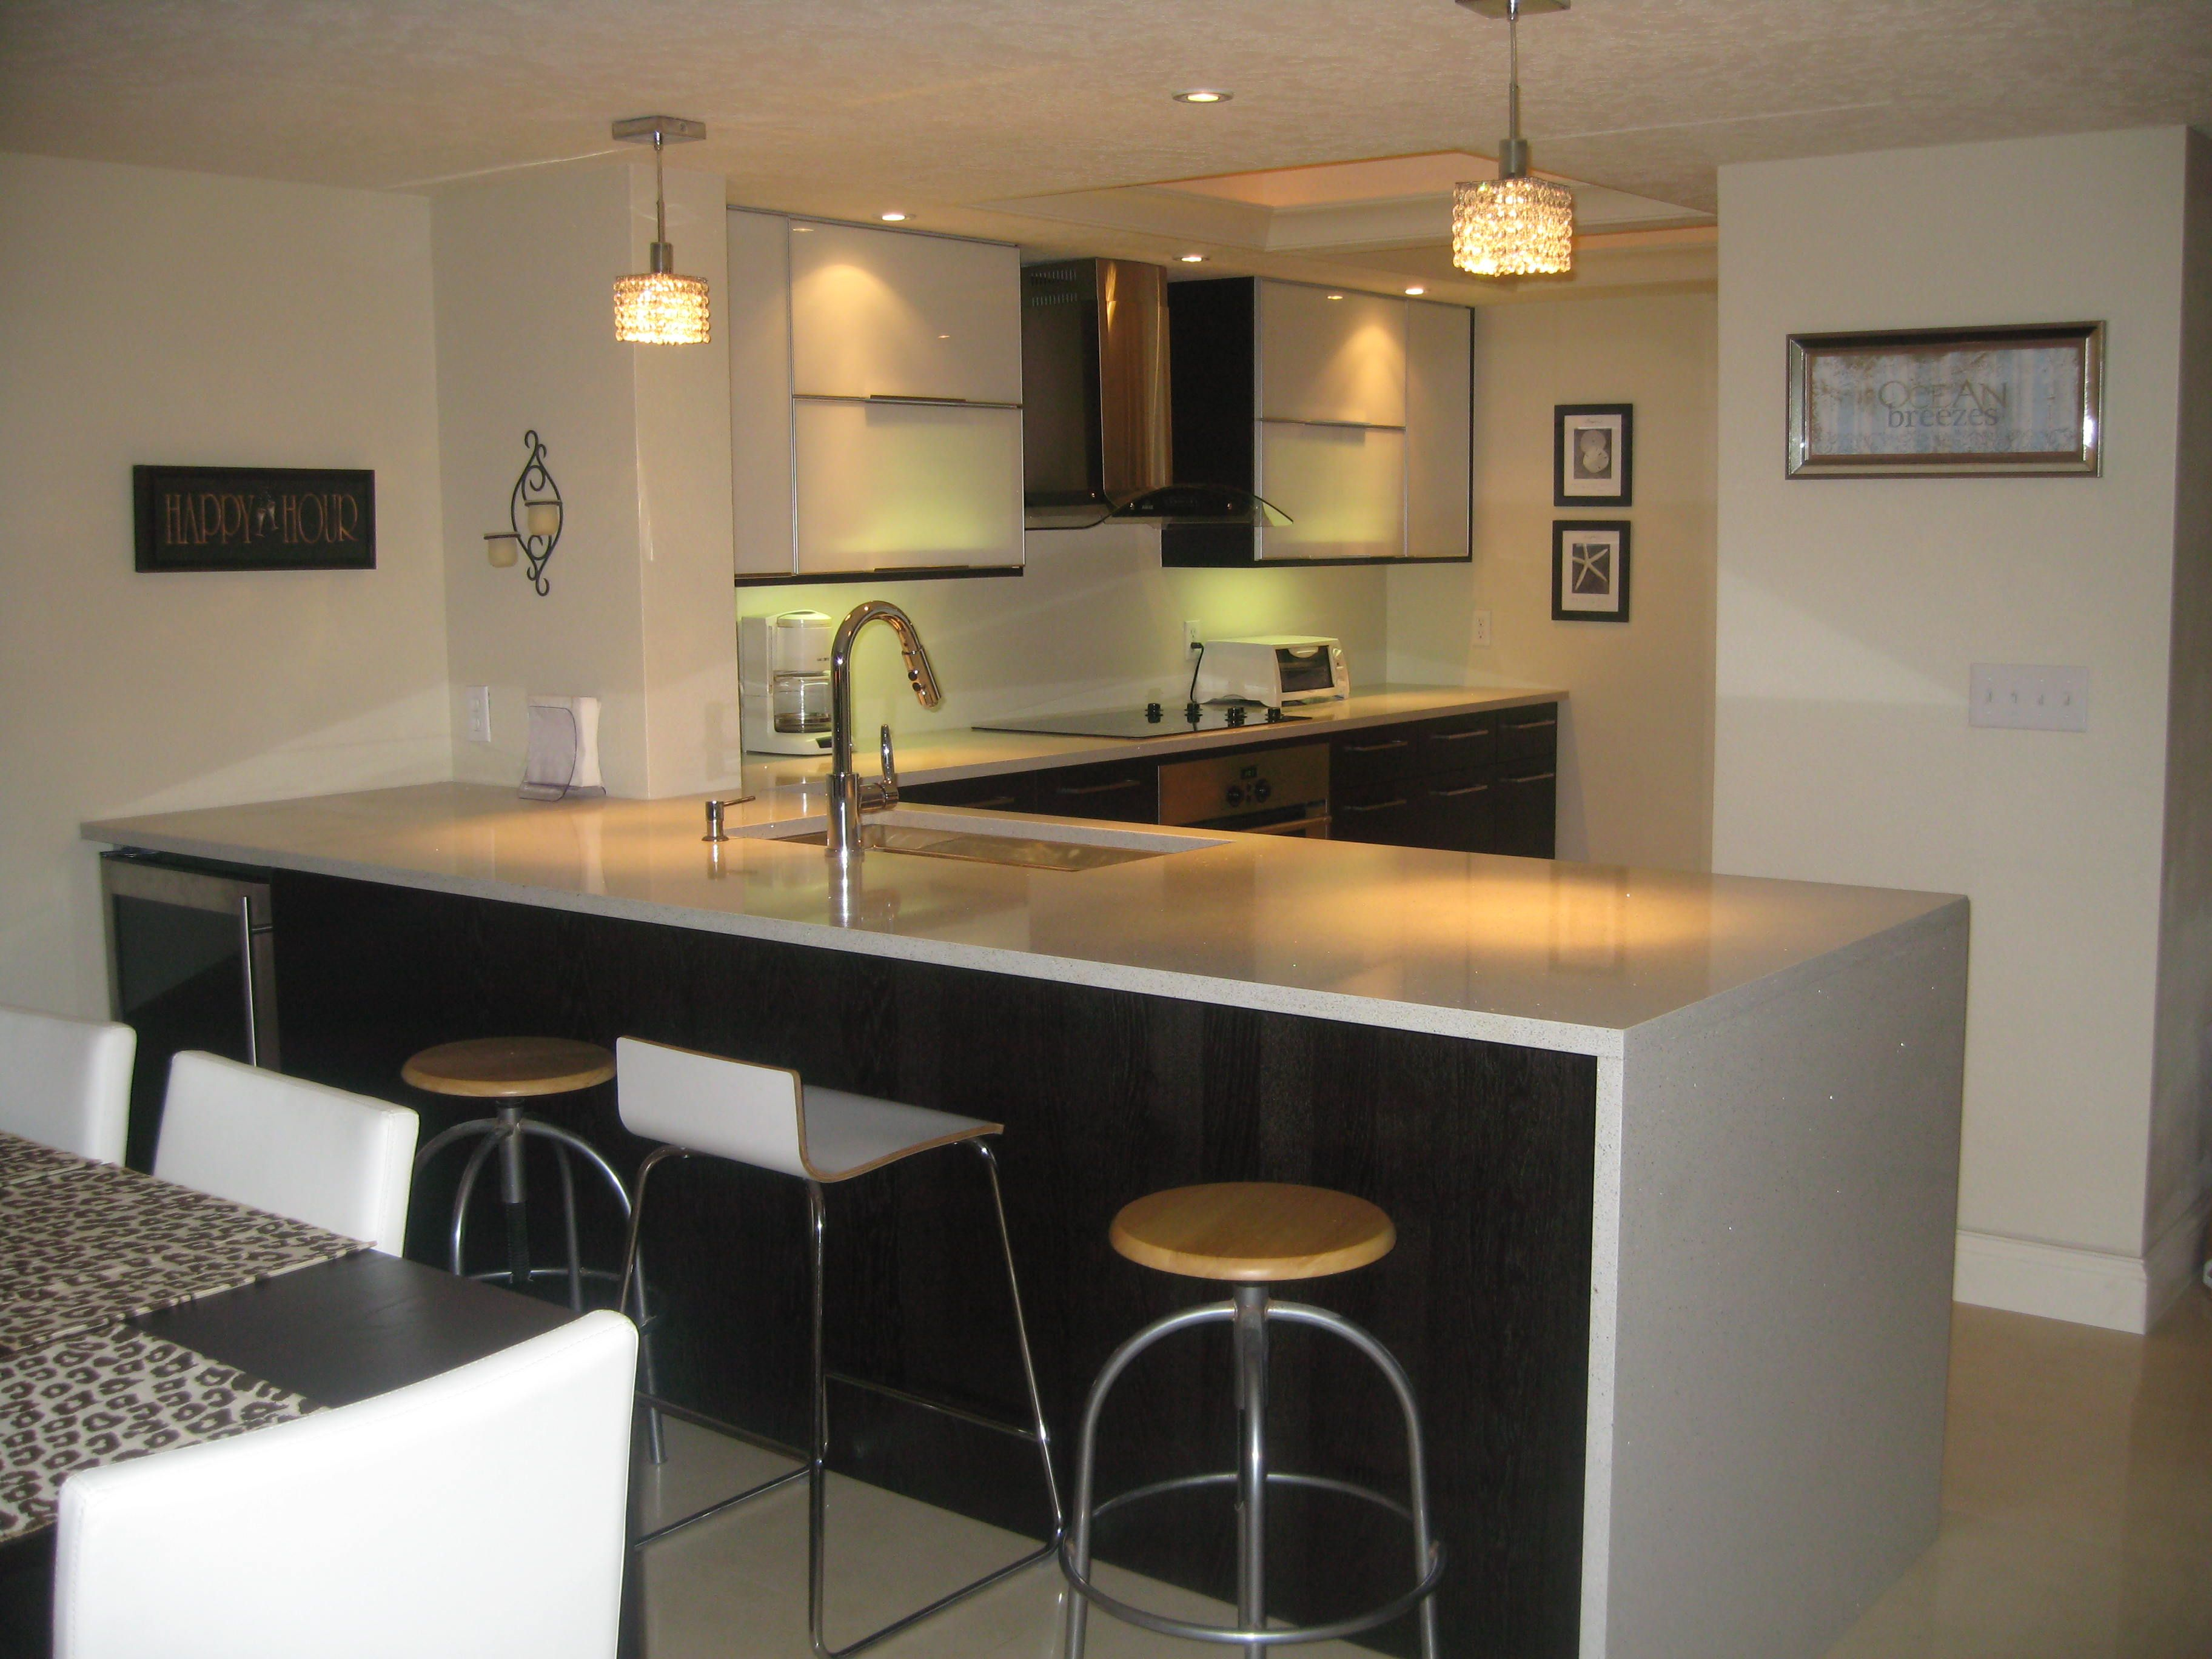 Condo Kitchen Design Inspiration Condo Kitchen Designs For Modern Contemporary White Kitchen Review